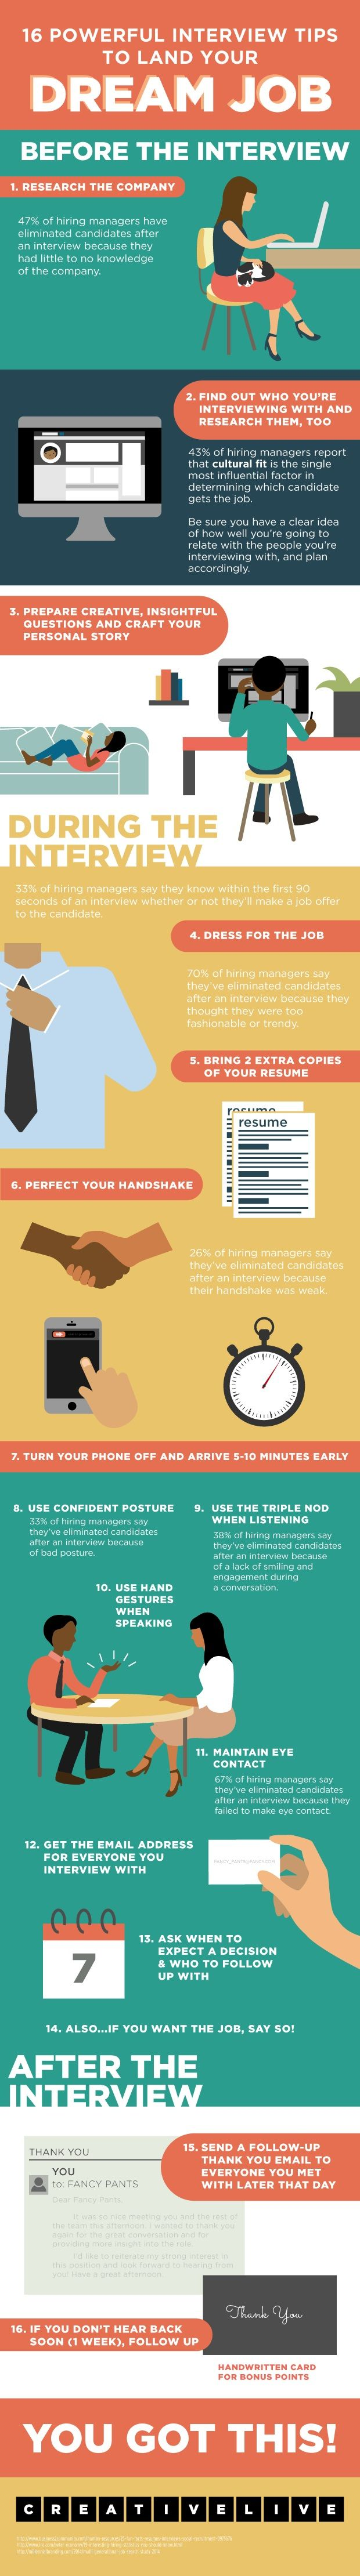 Infographic: 16 Job Interview Tips To Help You Land Your Dream Job - DesignTAXI.com